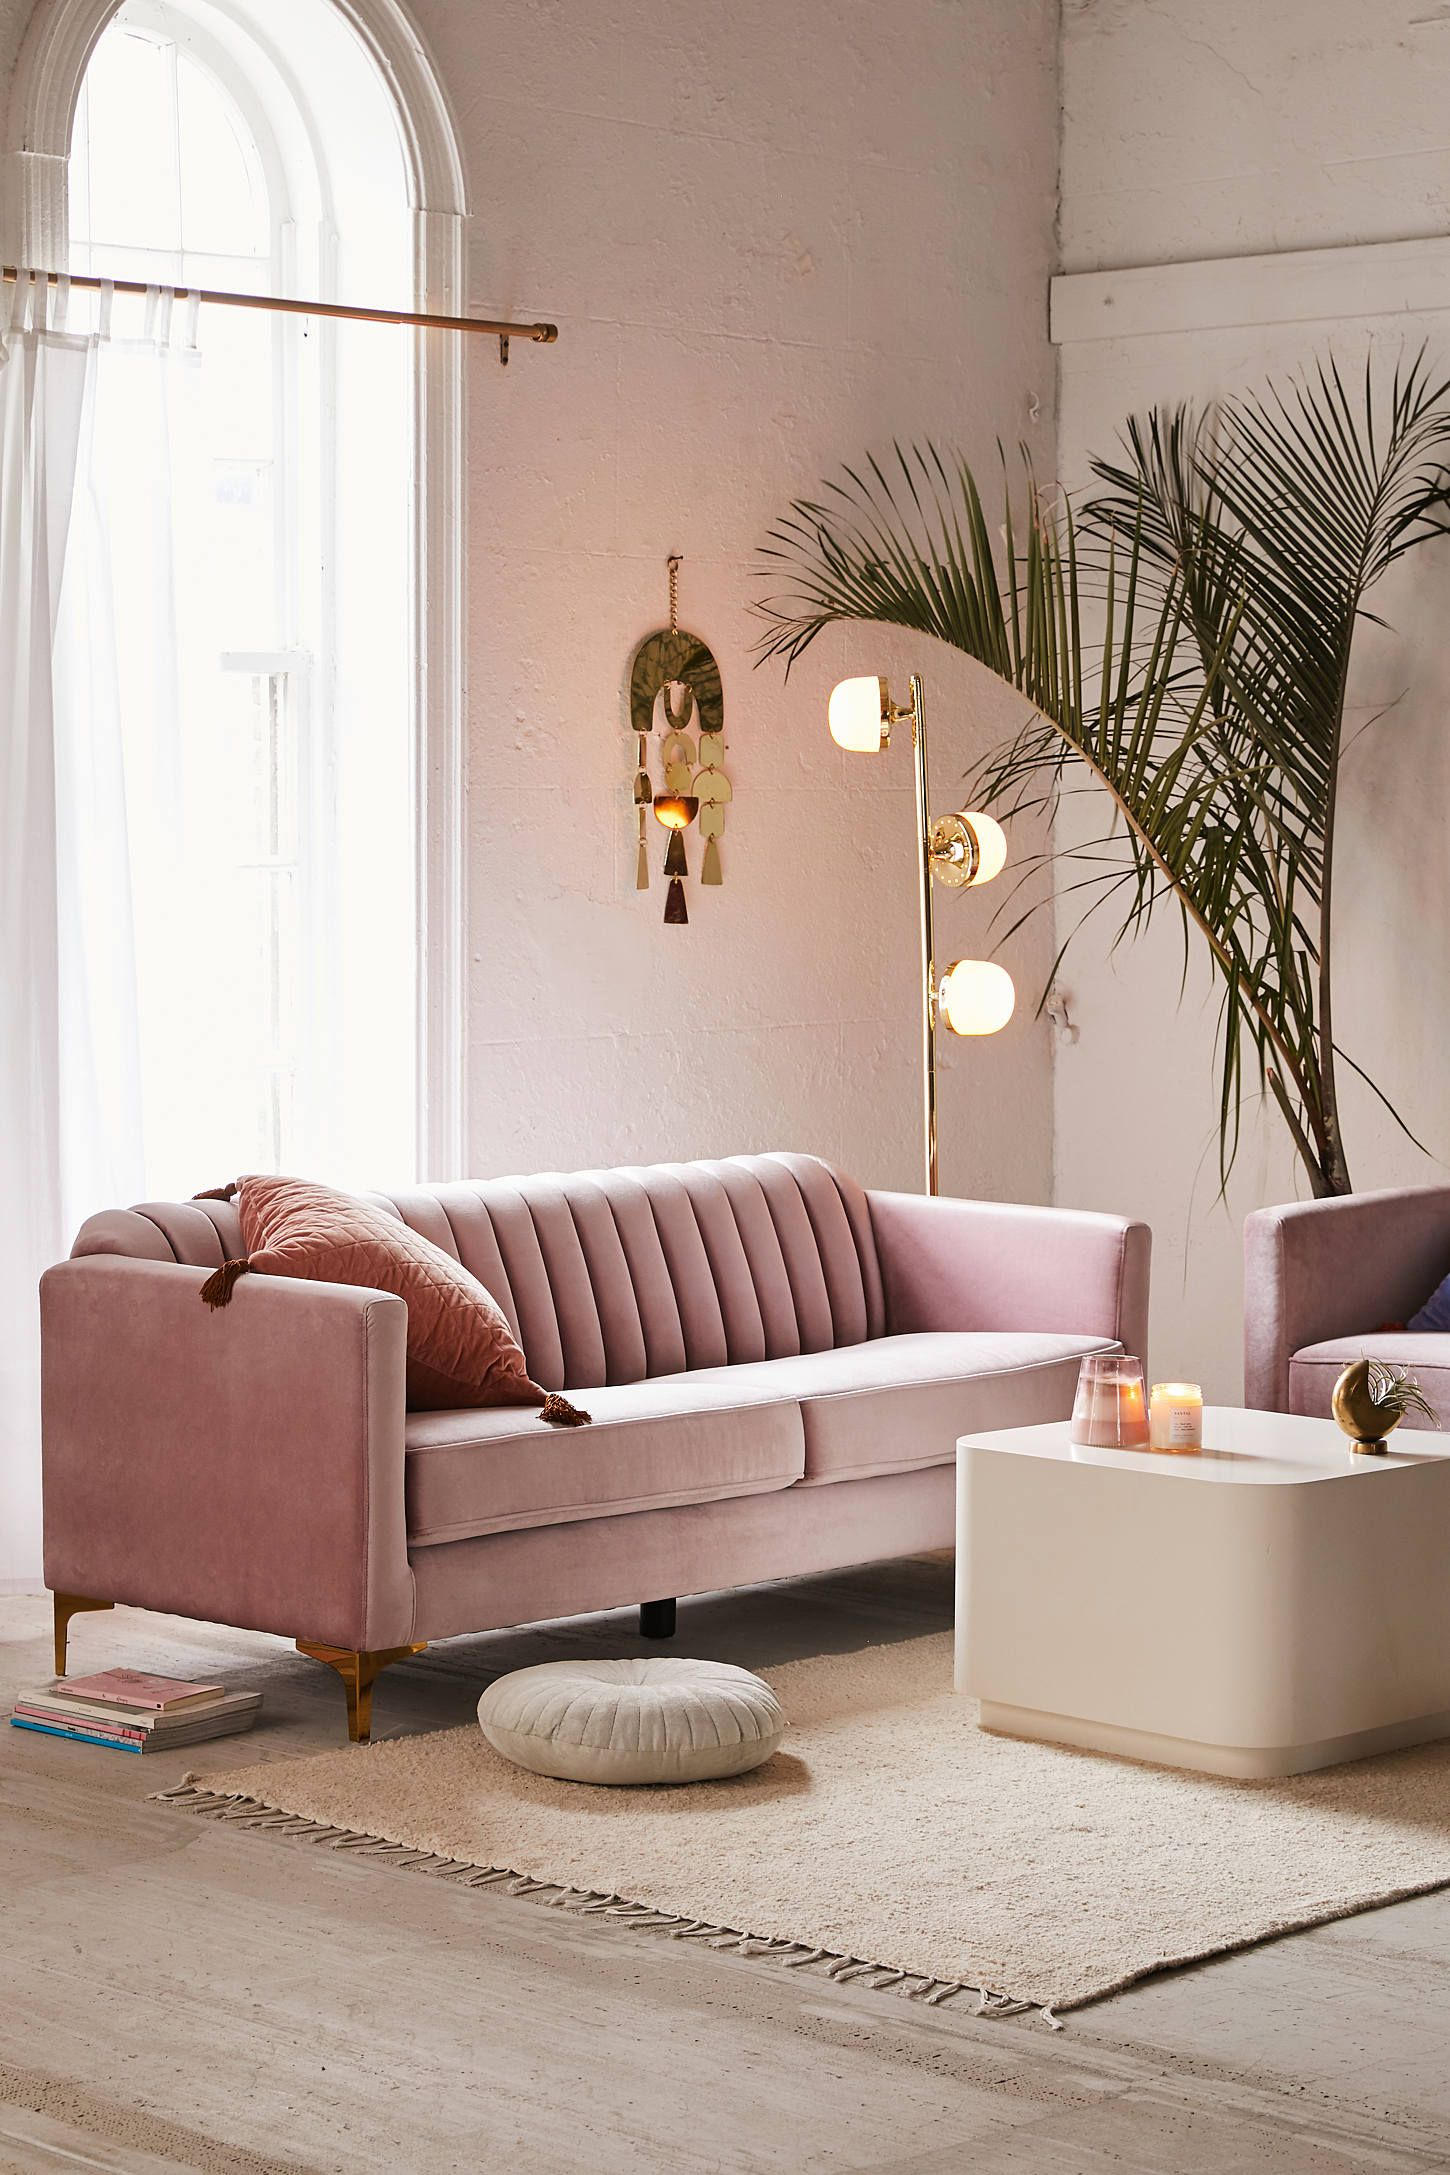 Marcella Velvet Sofa Sofas For Small Spaces Couches For Small Spaces Minimalist Furniture